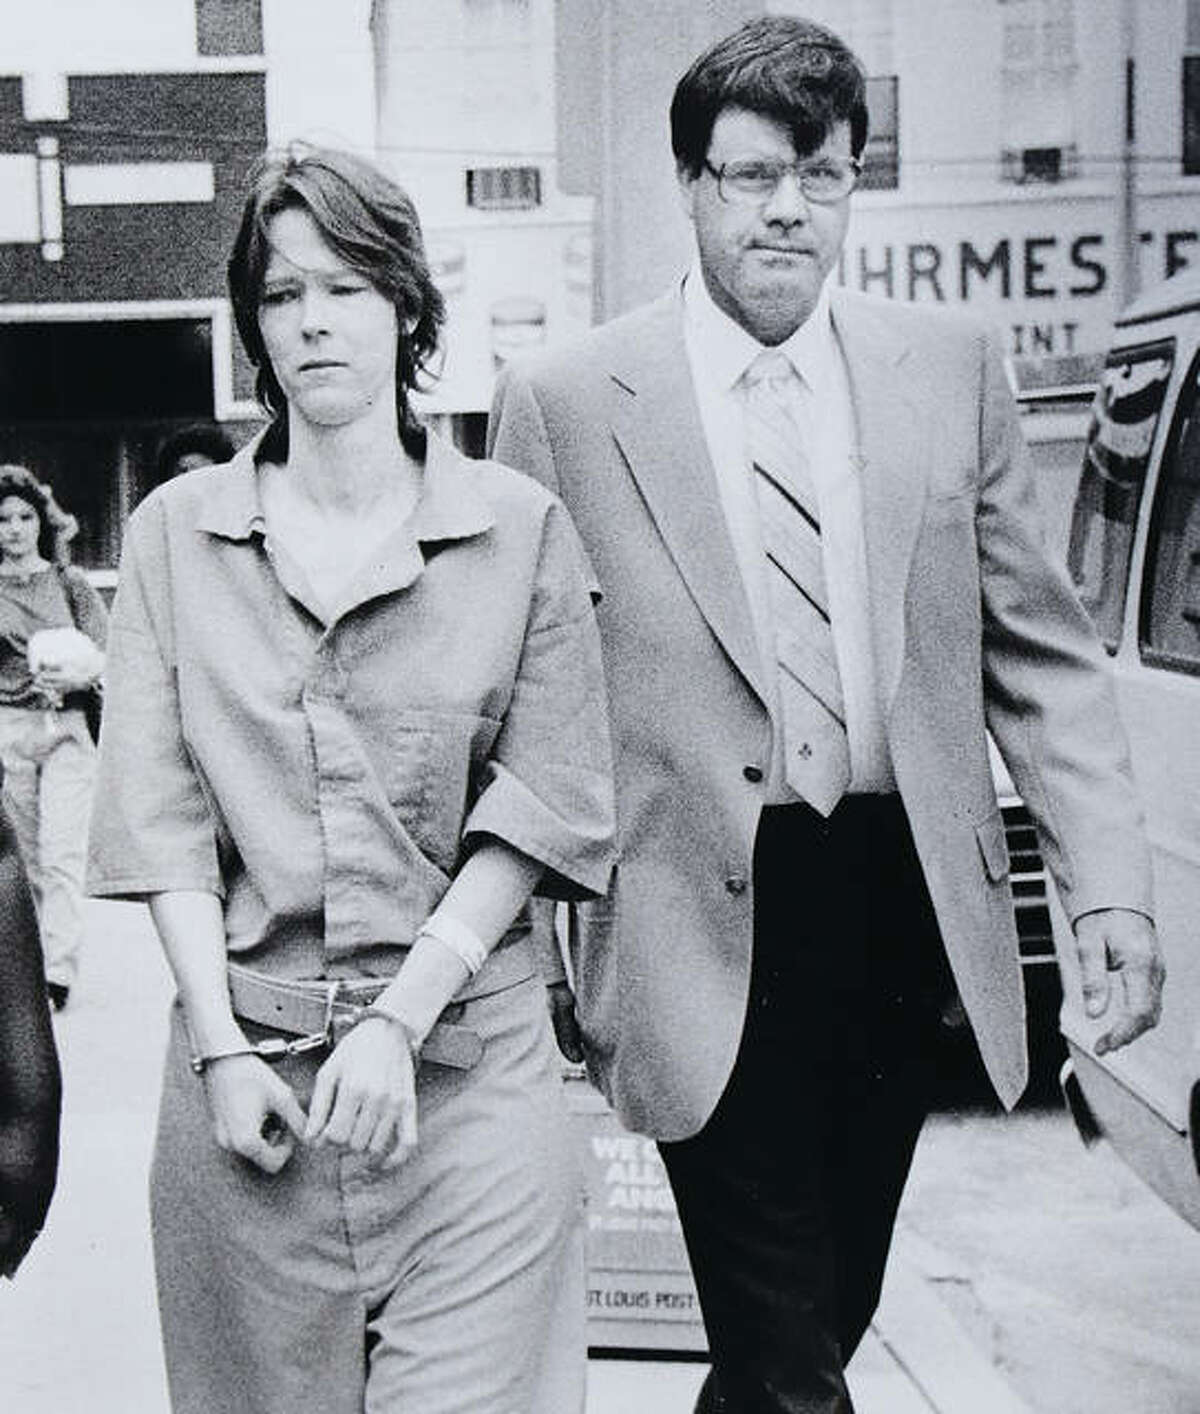 Wearing standard Madison County Jail clothing, Paula Sims is escorted by a deputy sheriff at the Madison County Courthouse. - John Badman|The Telegraph